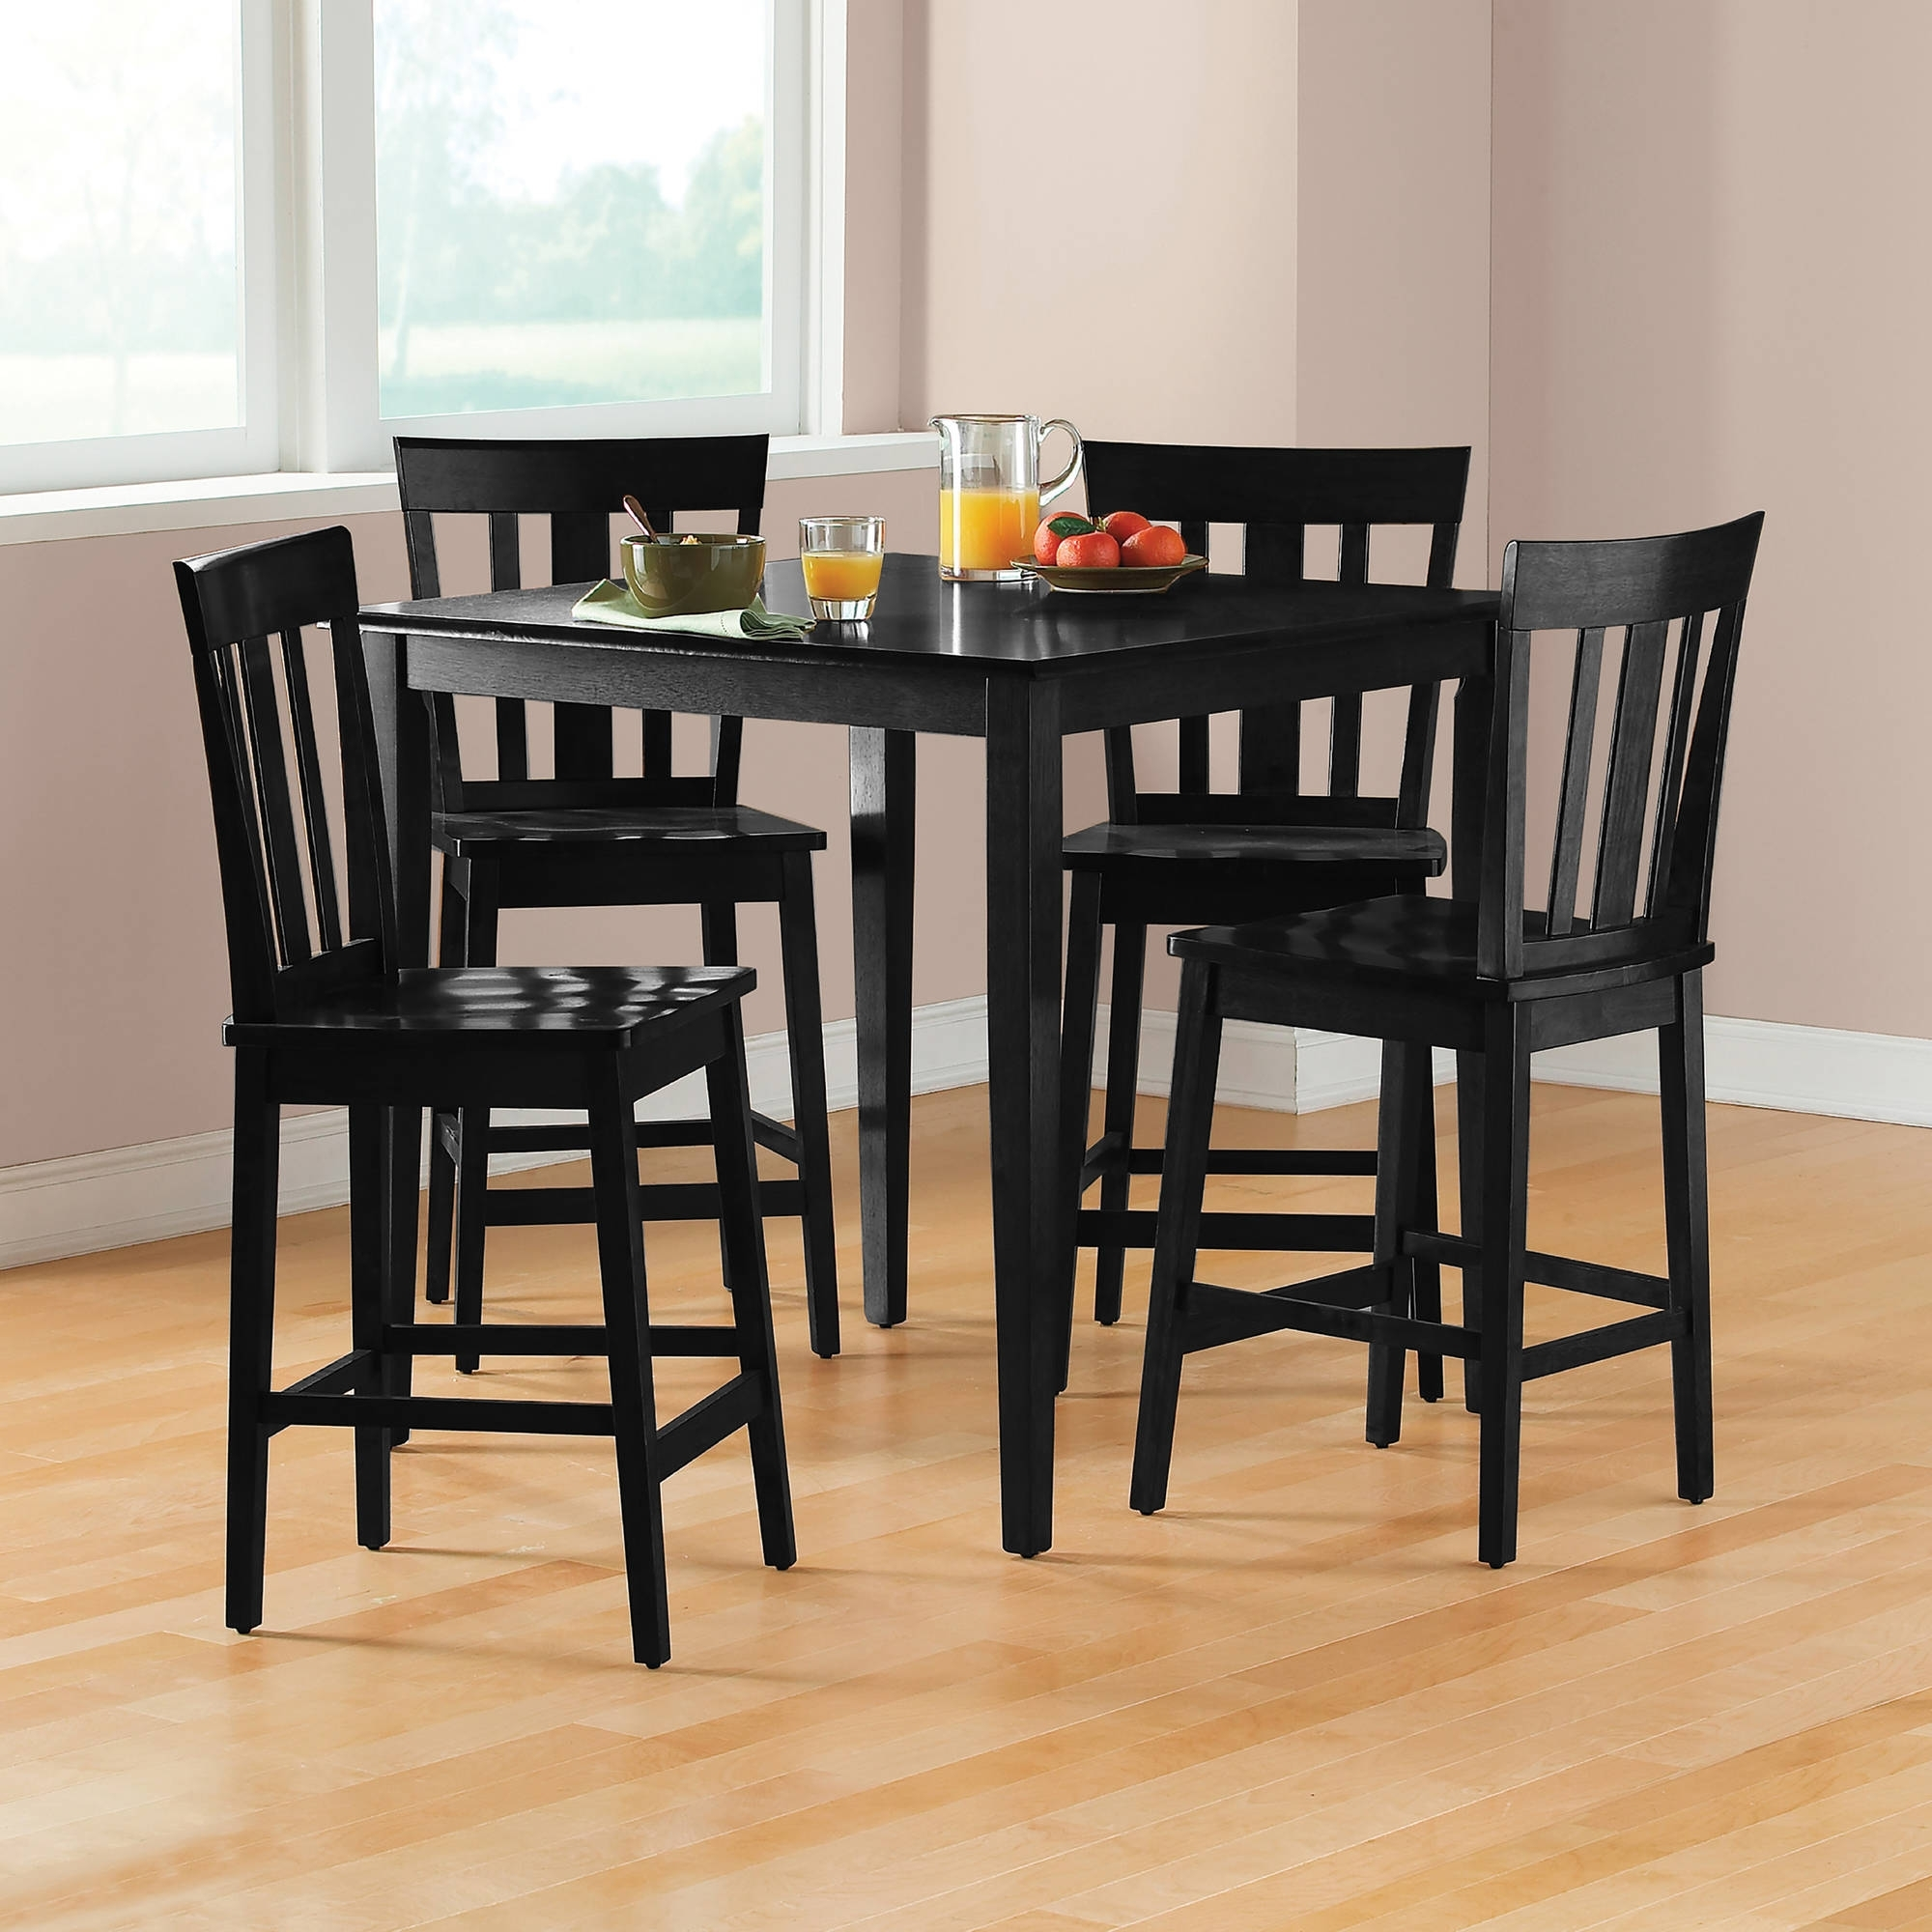 Mainstays 5 Piece Mission Counter Height Dining Set – Walmart In Latest Laurent 7 Piece Rectangle Dining Sets With Wood Chairs (View 20 of 20)